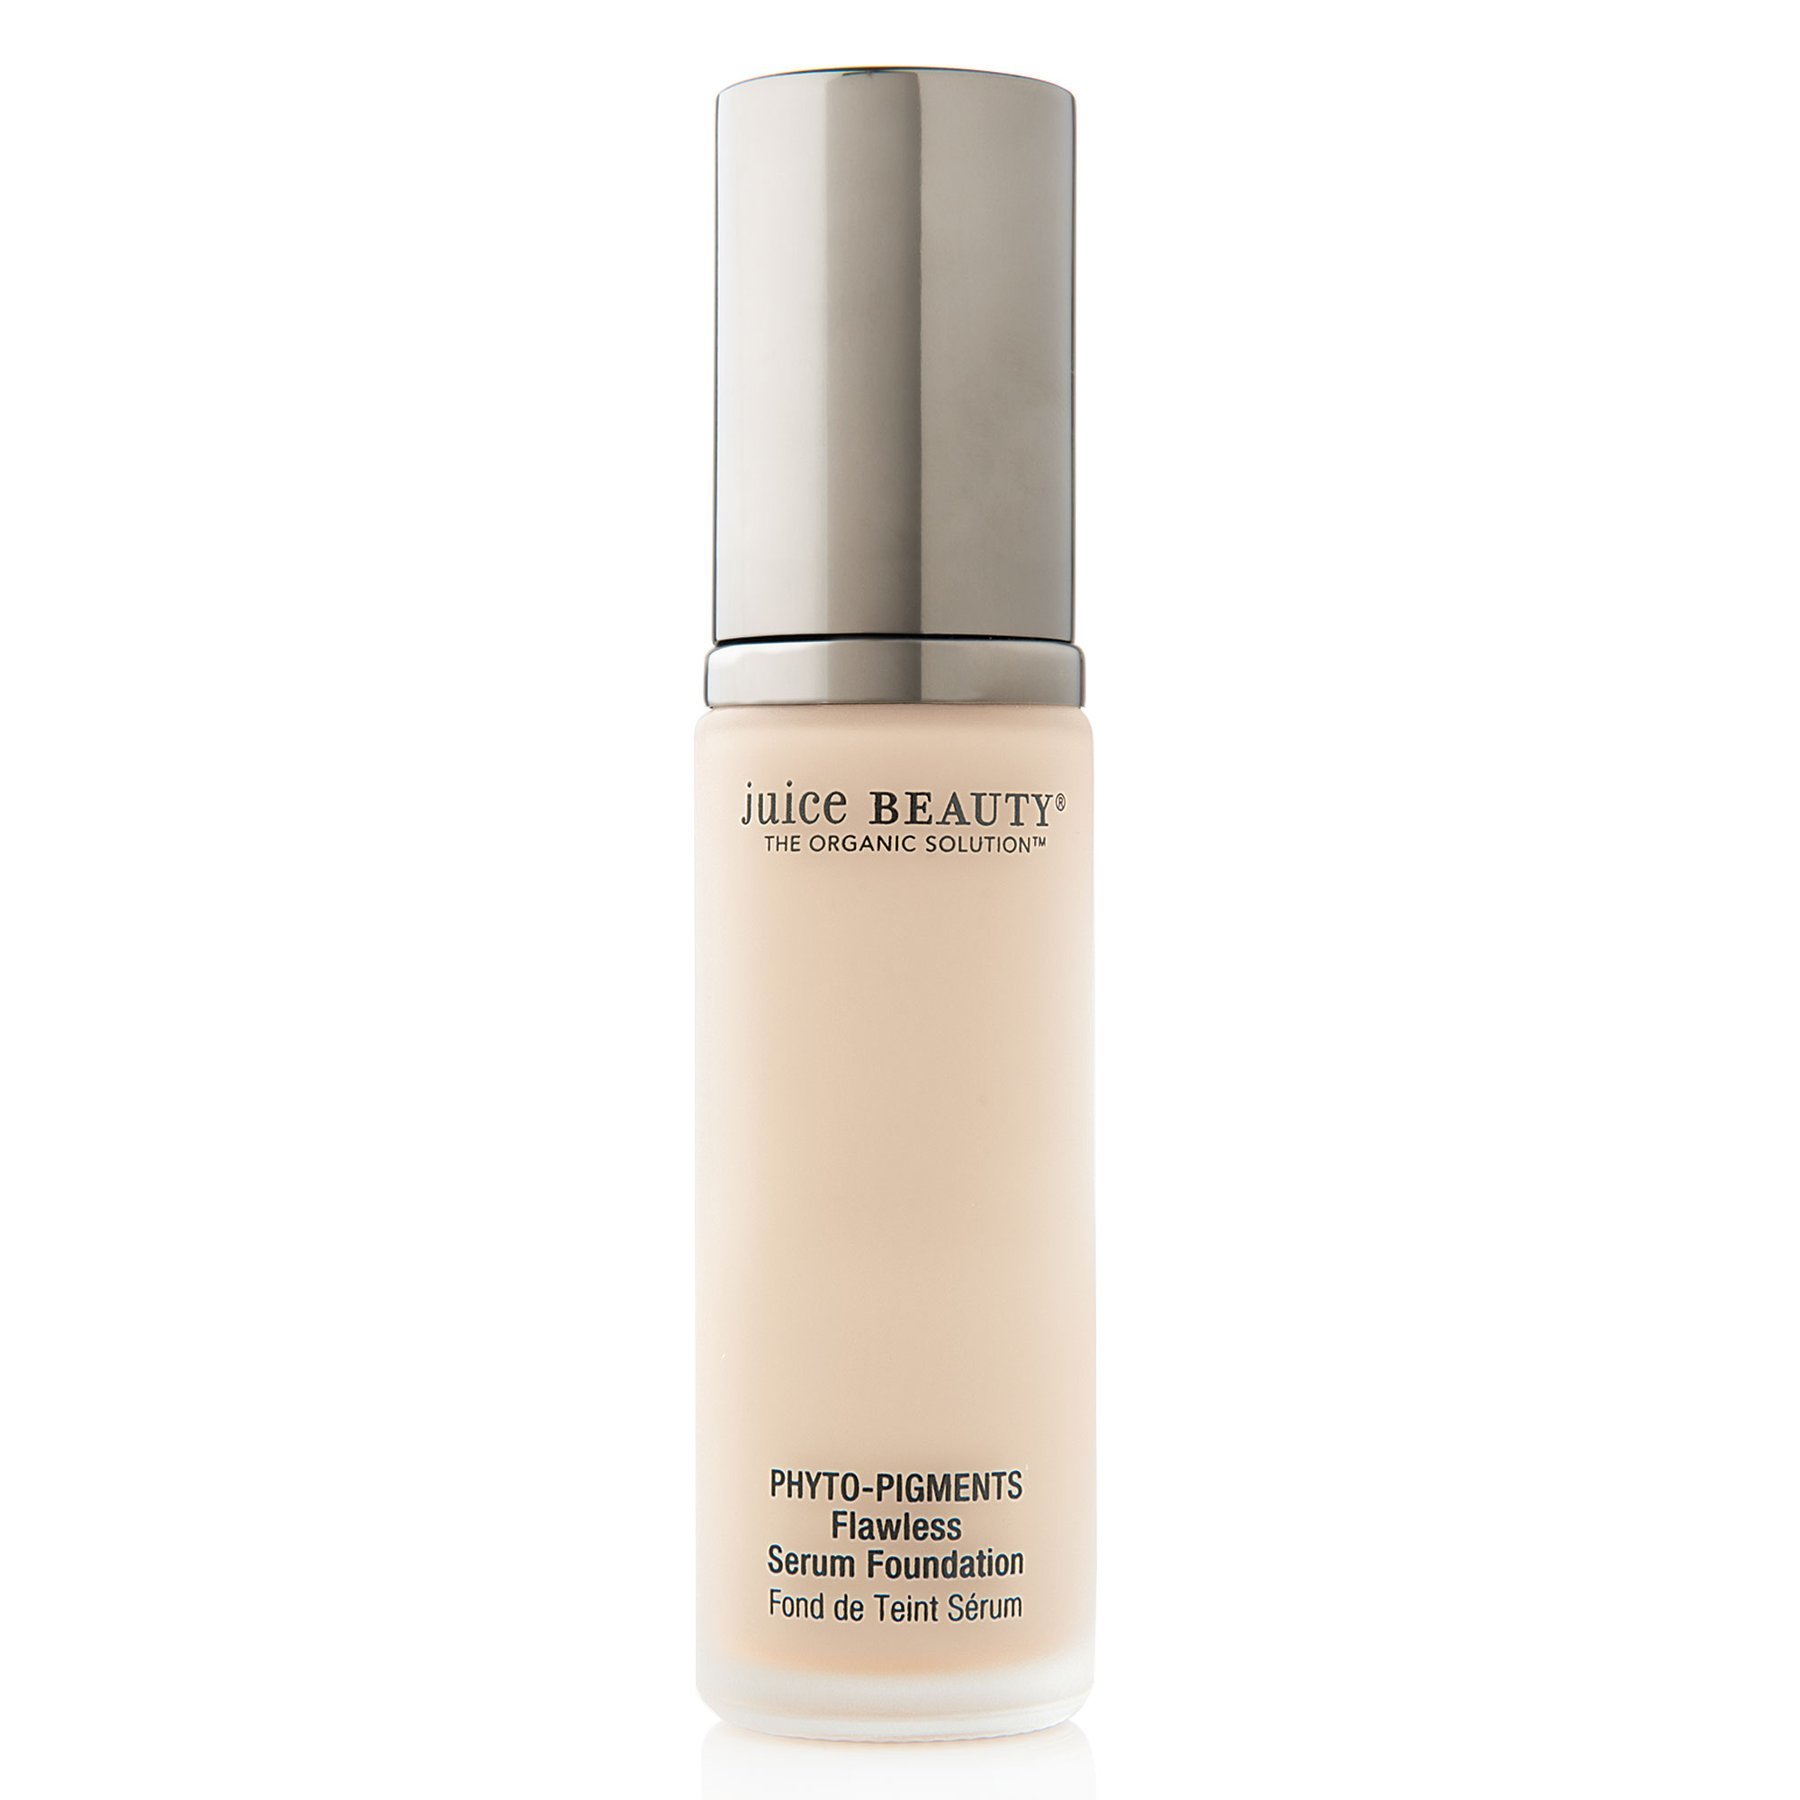 Phyto Pigments Flawless Serum Foundation by Juice Beauty